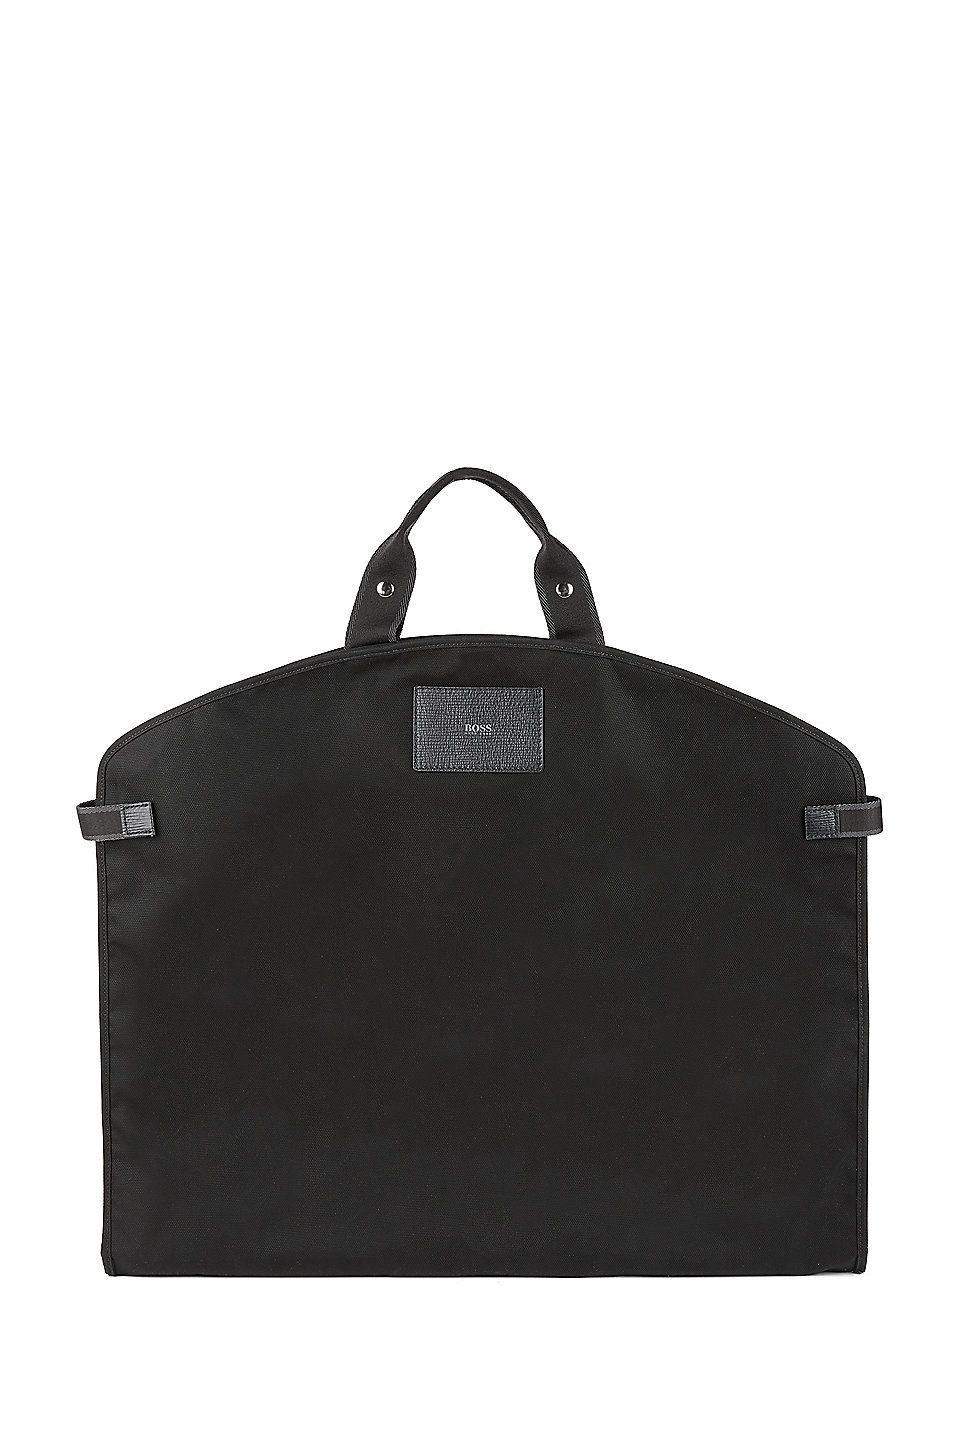 faabf467daeb HUGO BOSS Nylon garment bag with Italian calf-leather trims - Black Luggage  from BOSS for Men in the official HUGO BOSS Online Store free shipping